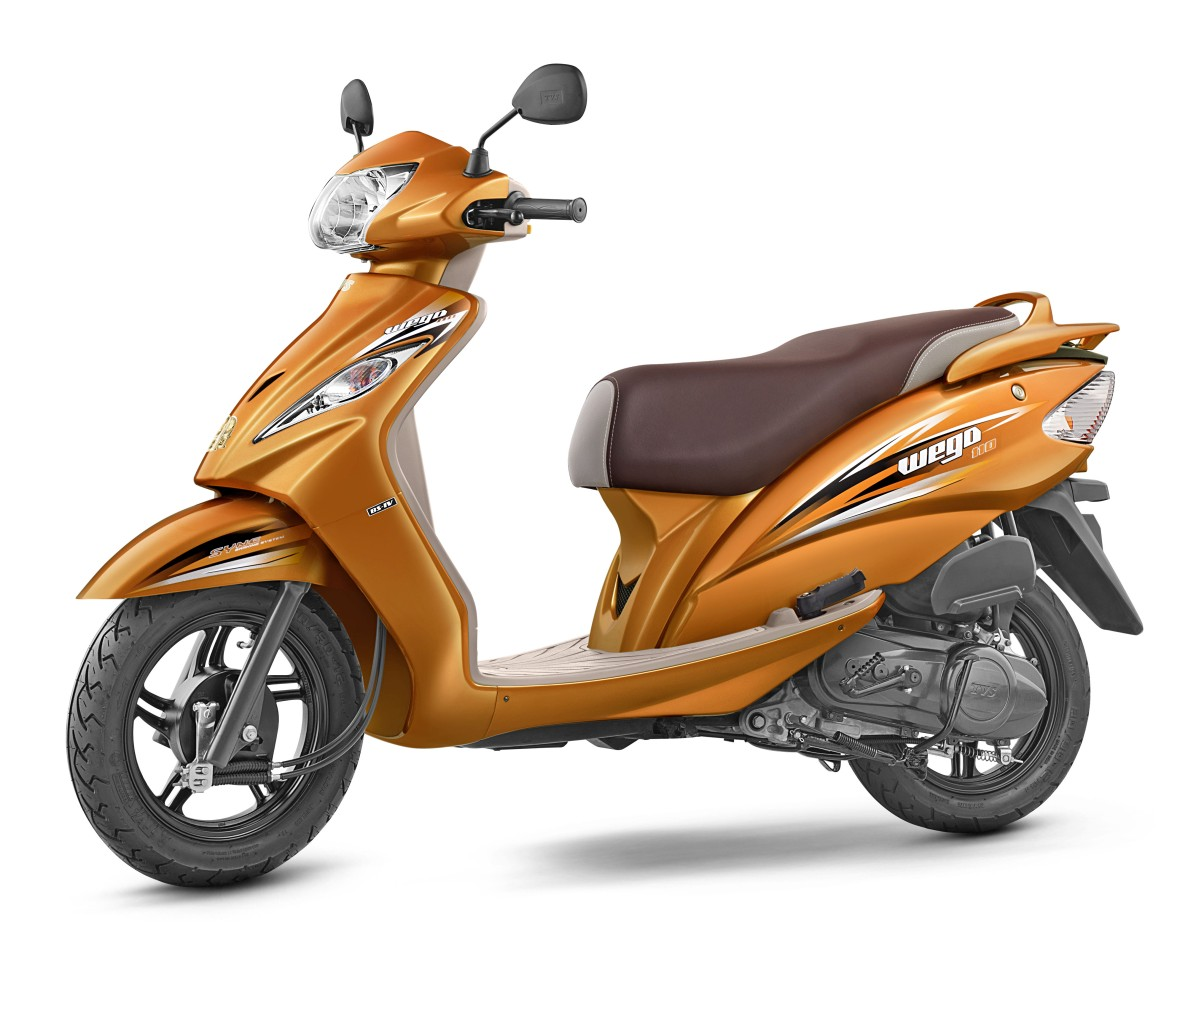 TVS WEGO is India's first ever scooter with a body balancing technology. The scooter comes with telescopic front shock absorbers, a digital speedometer and ...